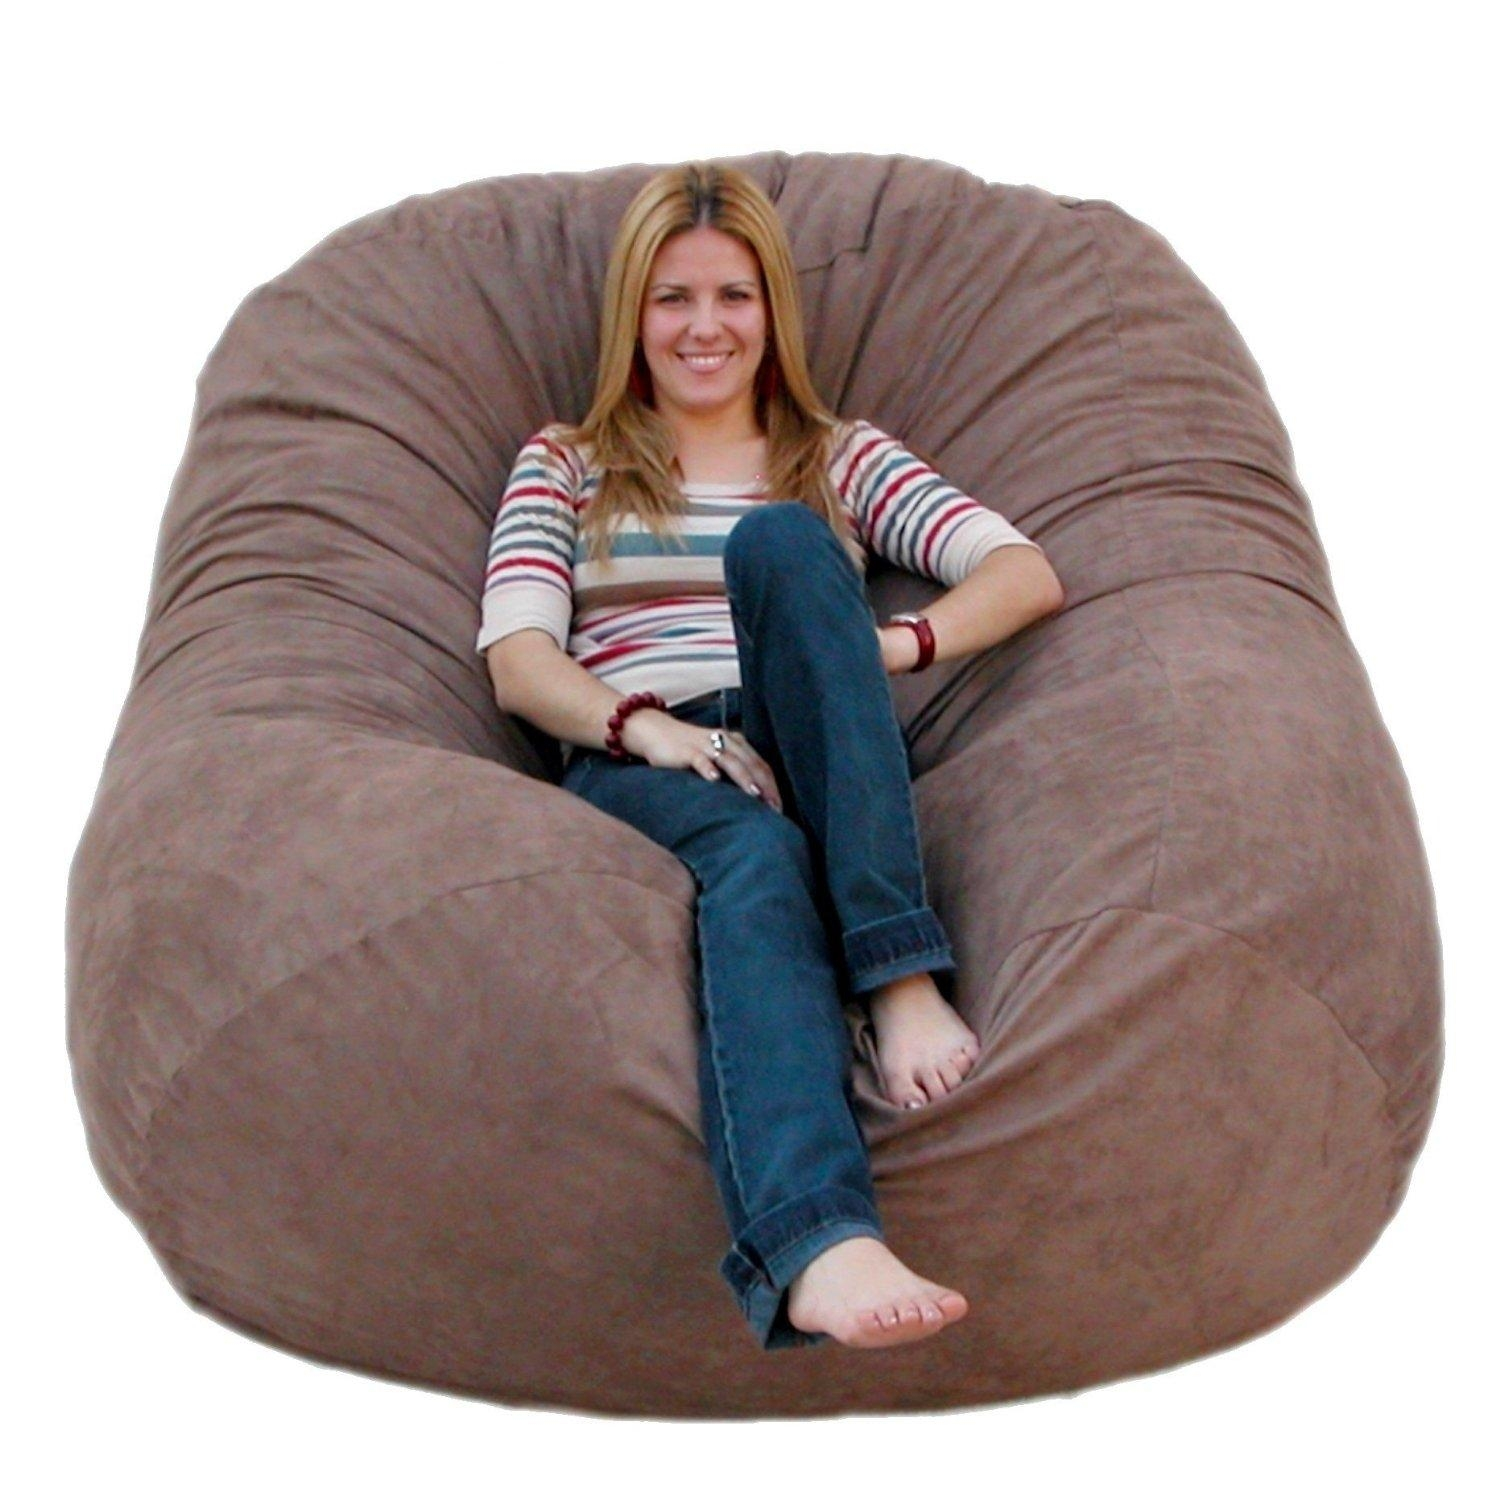 Chair Furniture Bedding Giant Bean Bag Funny Bags And Poufs Tabl With Giant Bean Bag Chairs (Image 4 of 20)